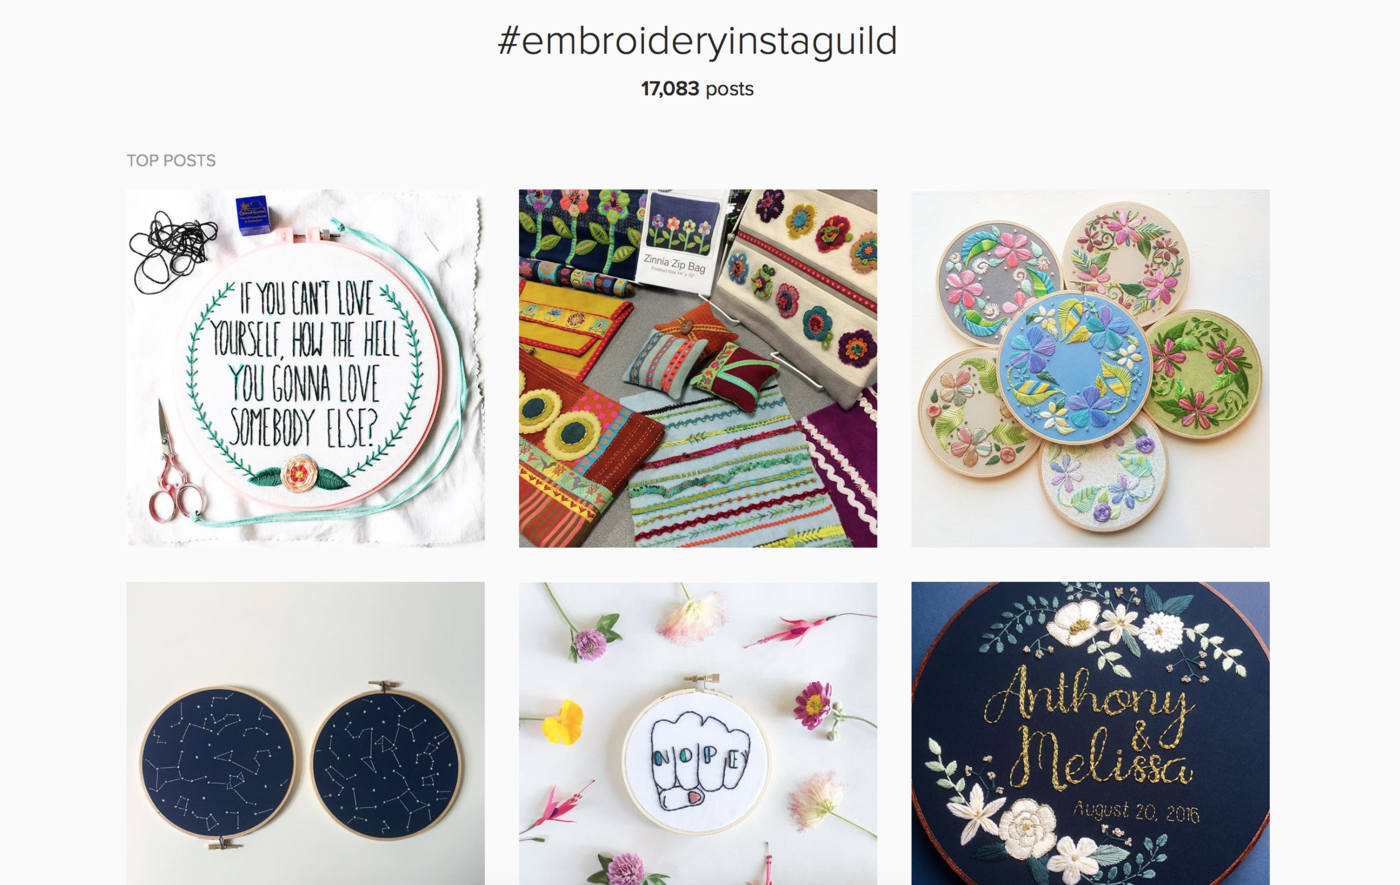 Browse Embroidery on Instagram